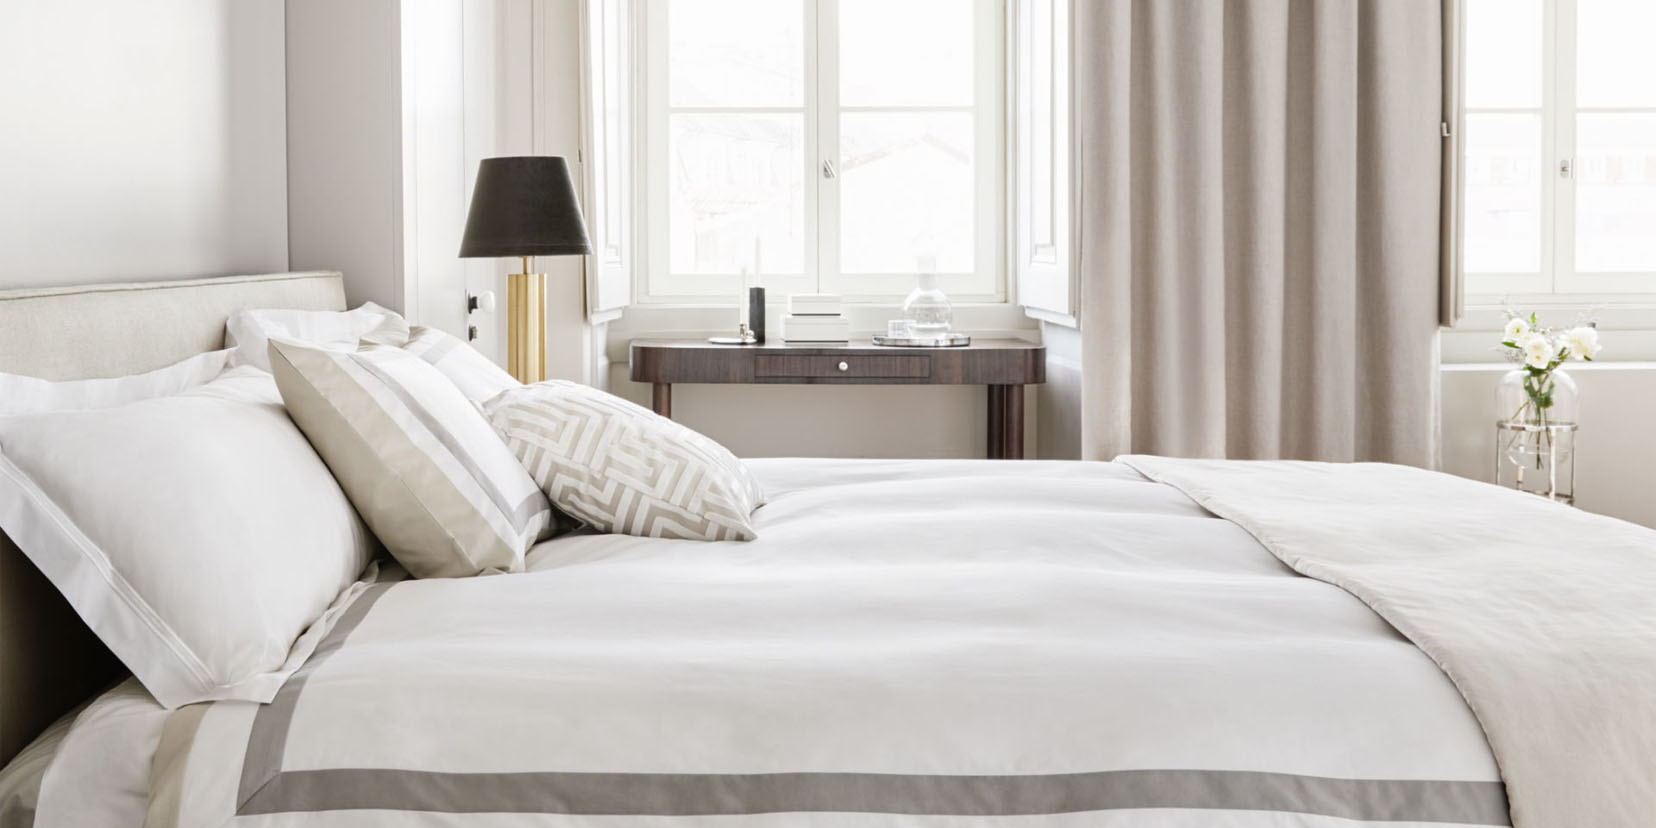 H&M's new home collection looks like you've stepped into a 5-star hotel, priced from $6